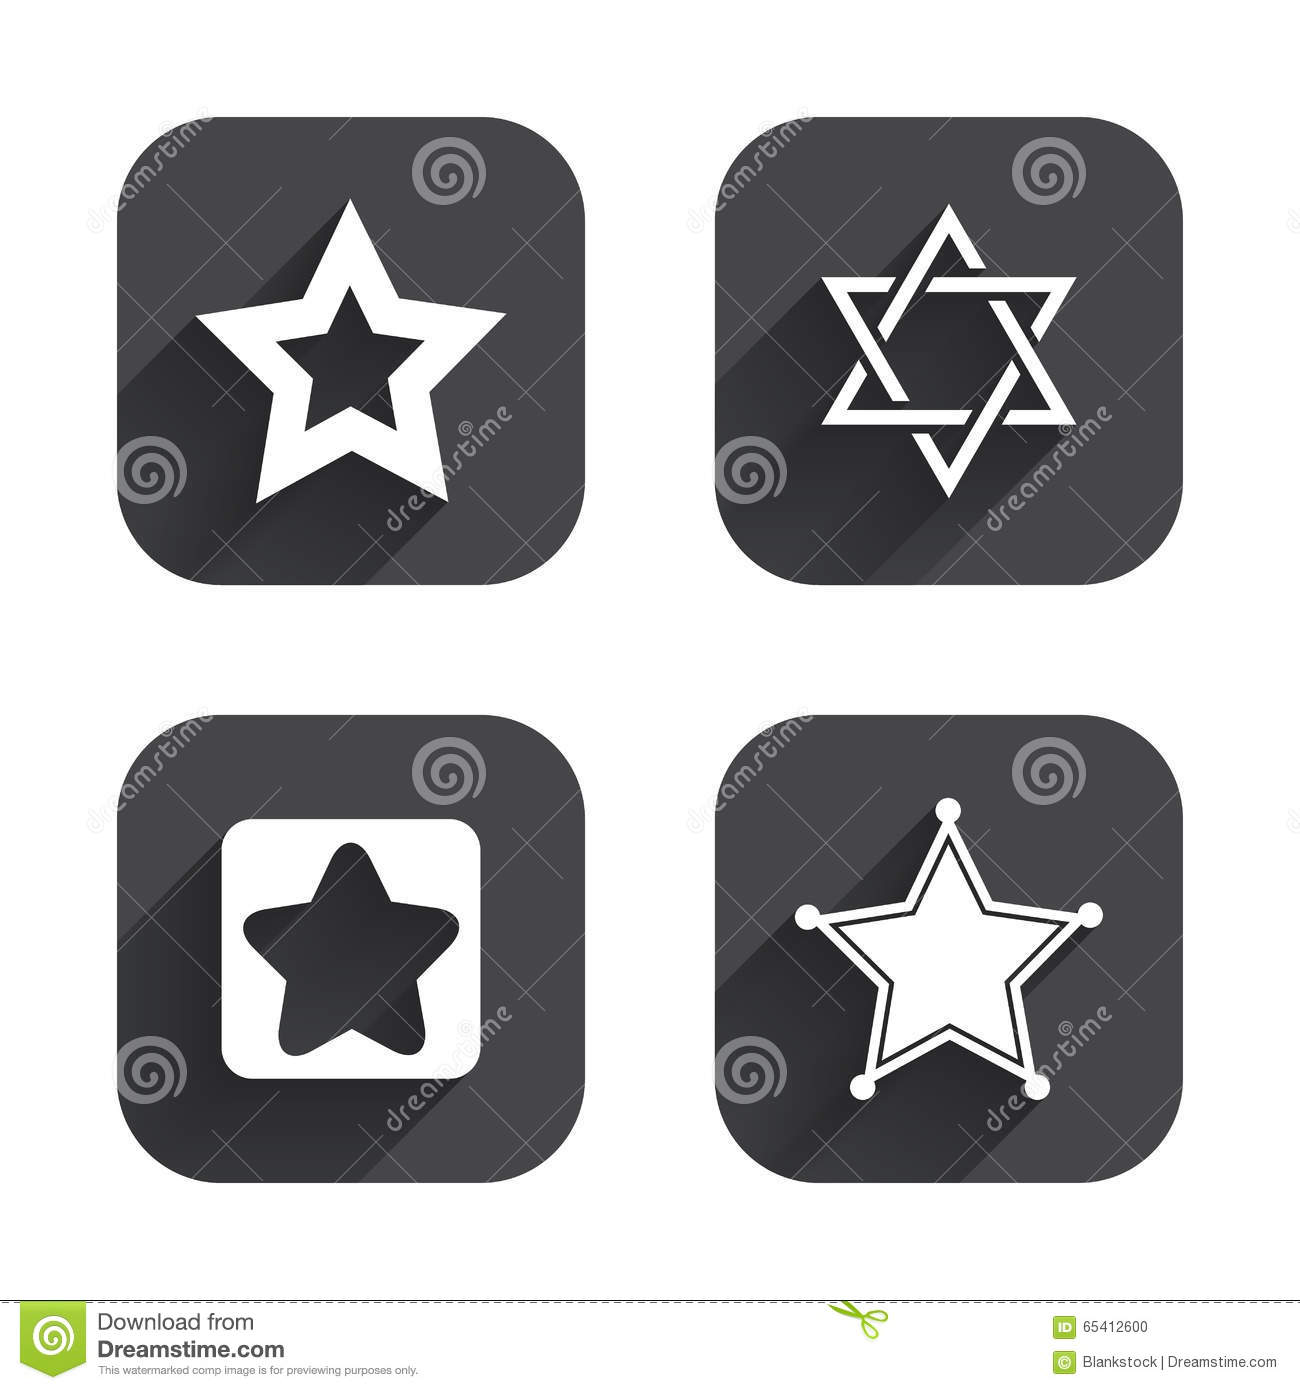 Star of david icons symbol of israel stock vector illustration star of david icons symbol of israel biocorpaavc Choice Image